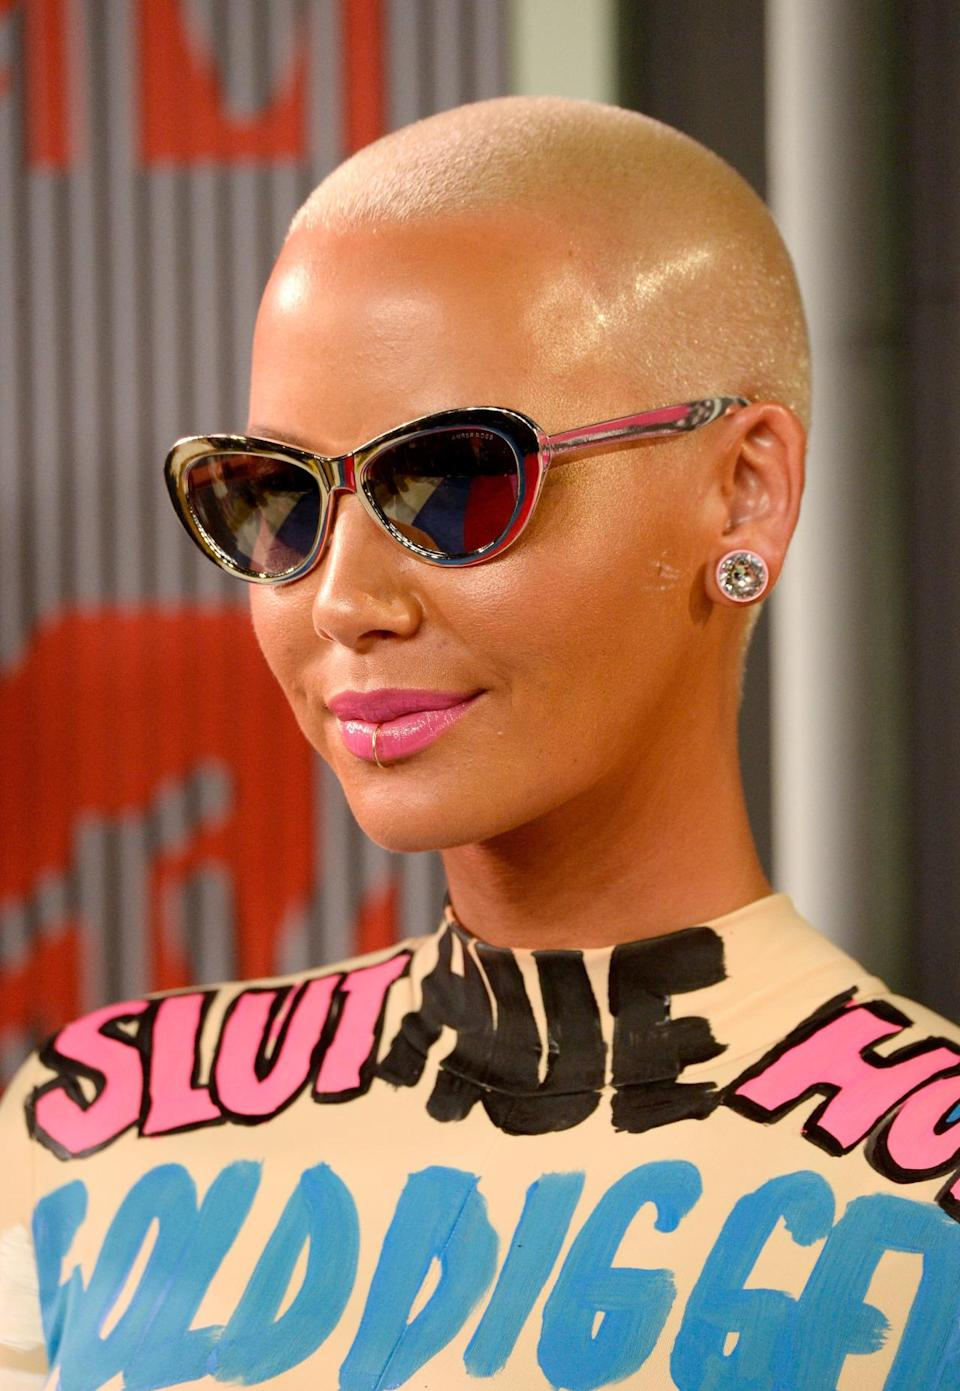 <p>Amber Rose hit the red carpet with her signature buzz cut in a bright silver blonde.</p><p>Source: Getty Images<br></p>